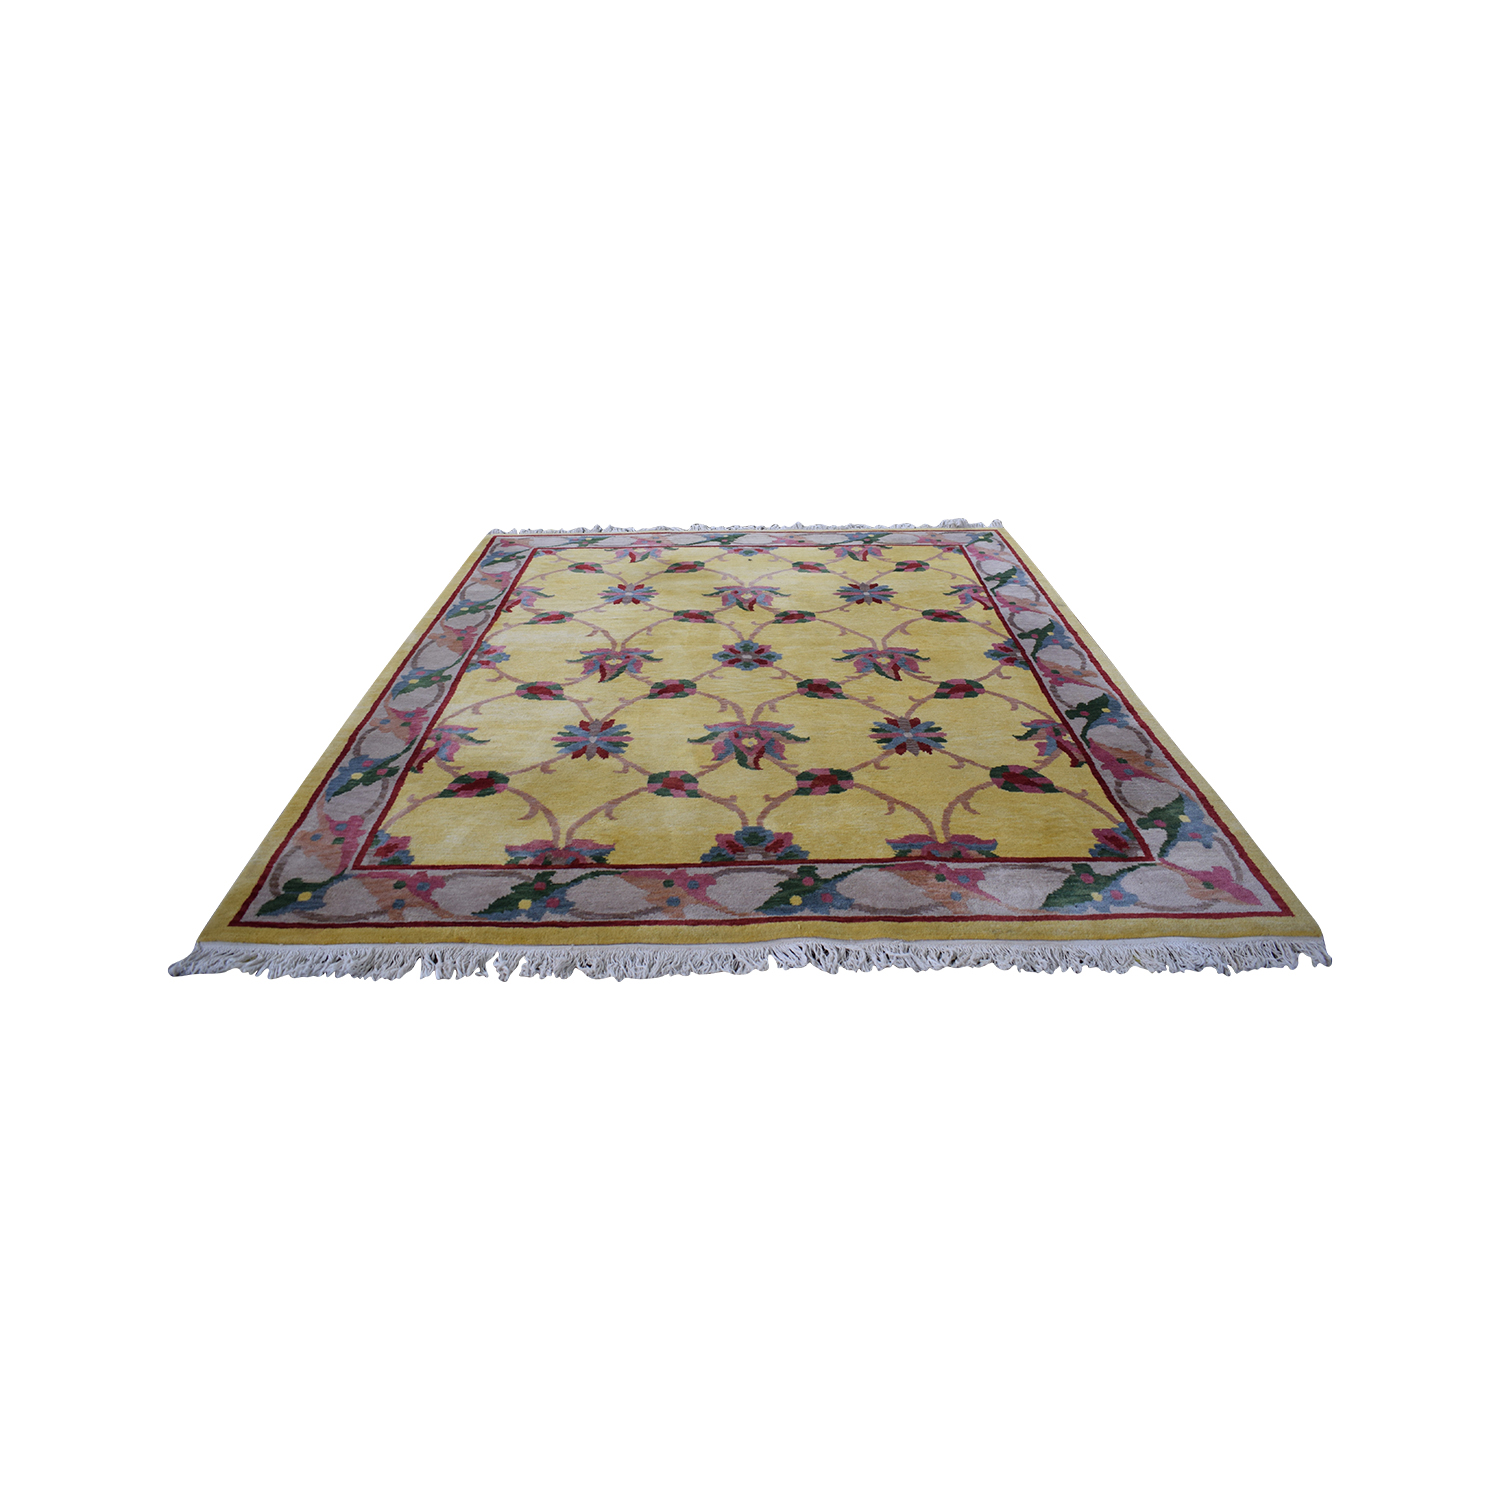 ABC Carpet & Home Oriental Wool Rug / Decor